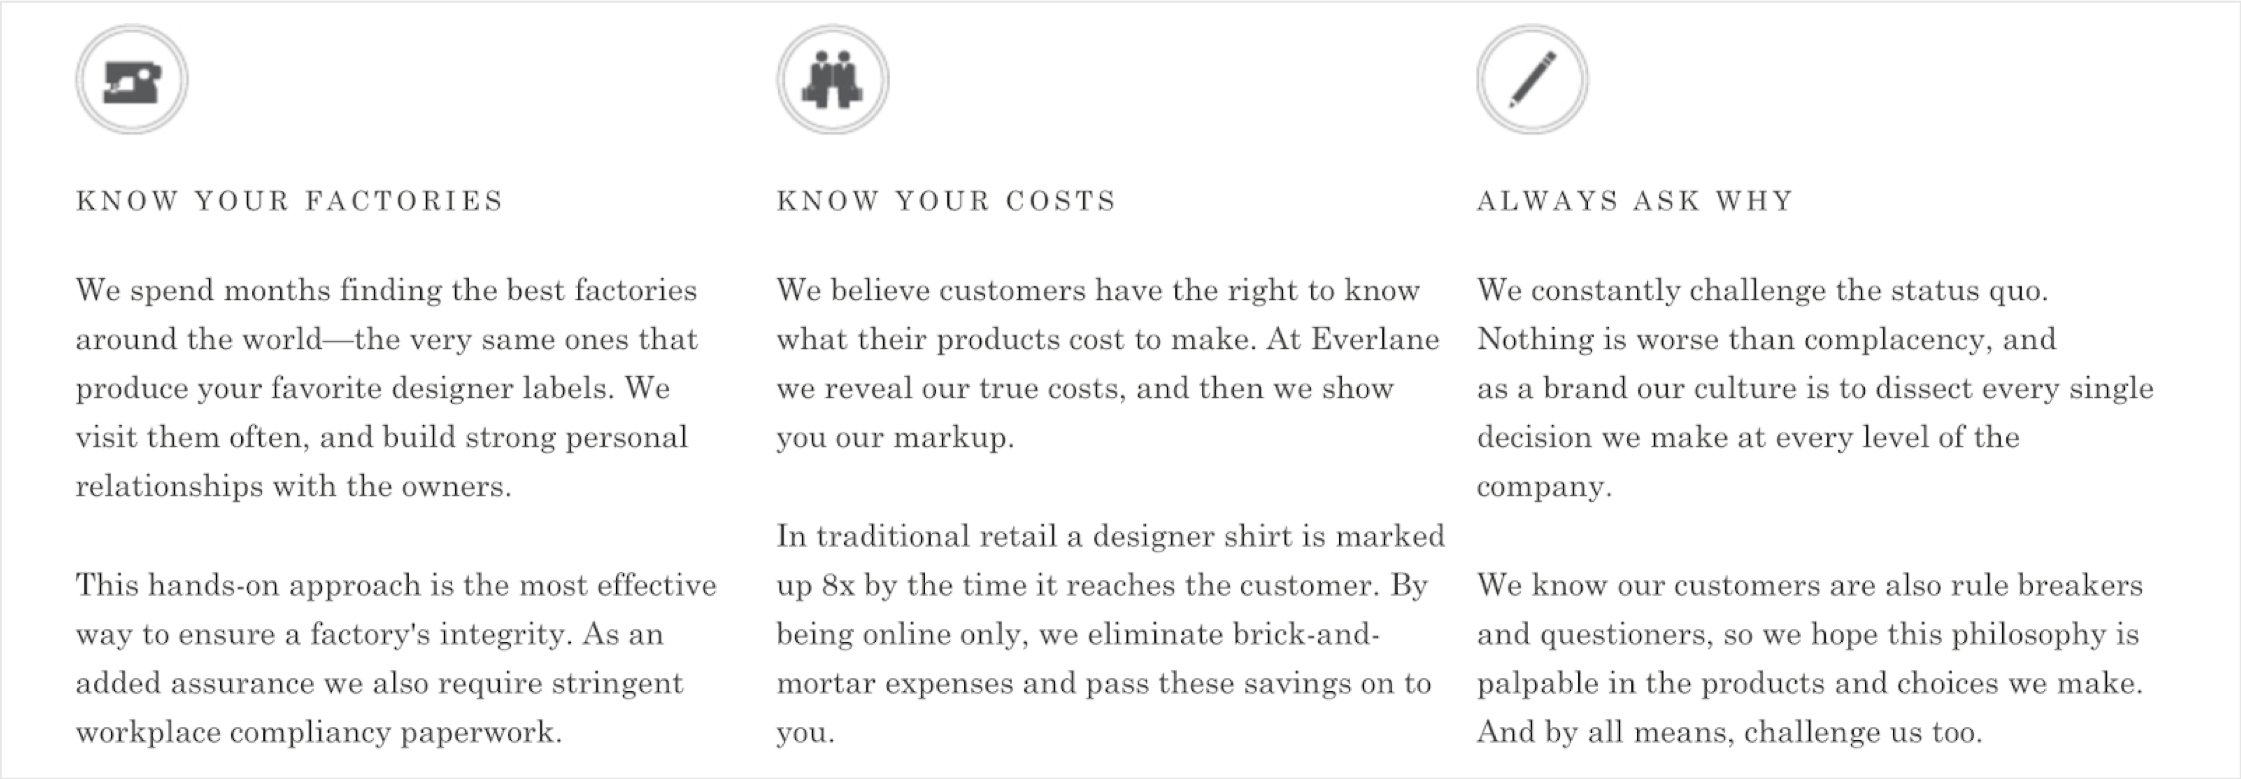 everlane company values